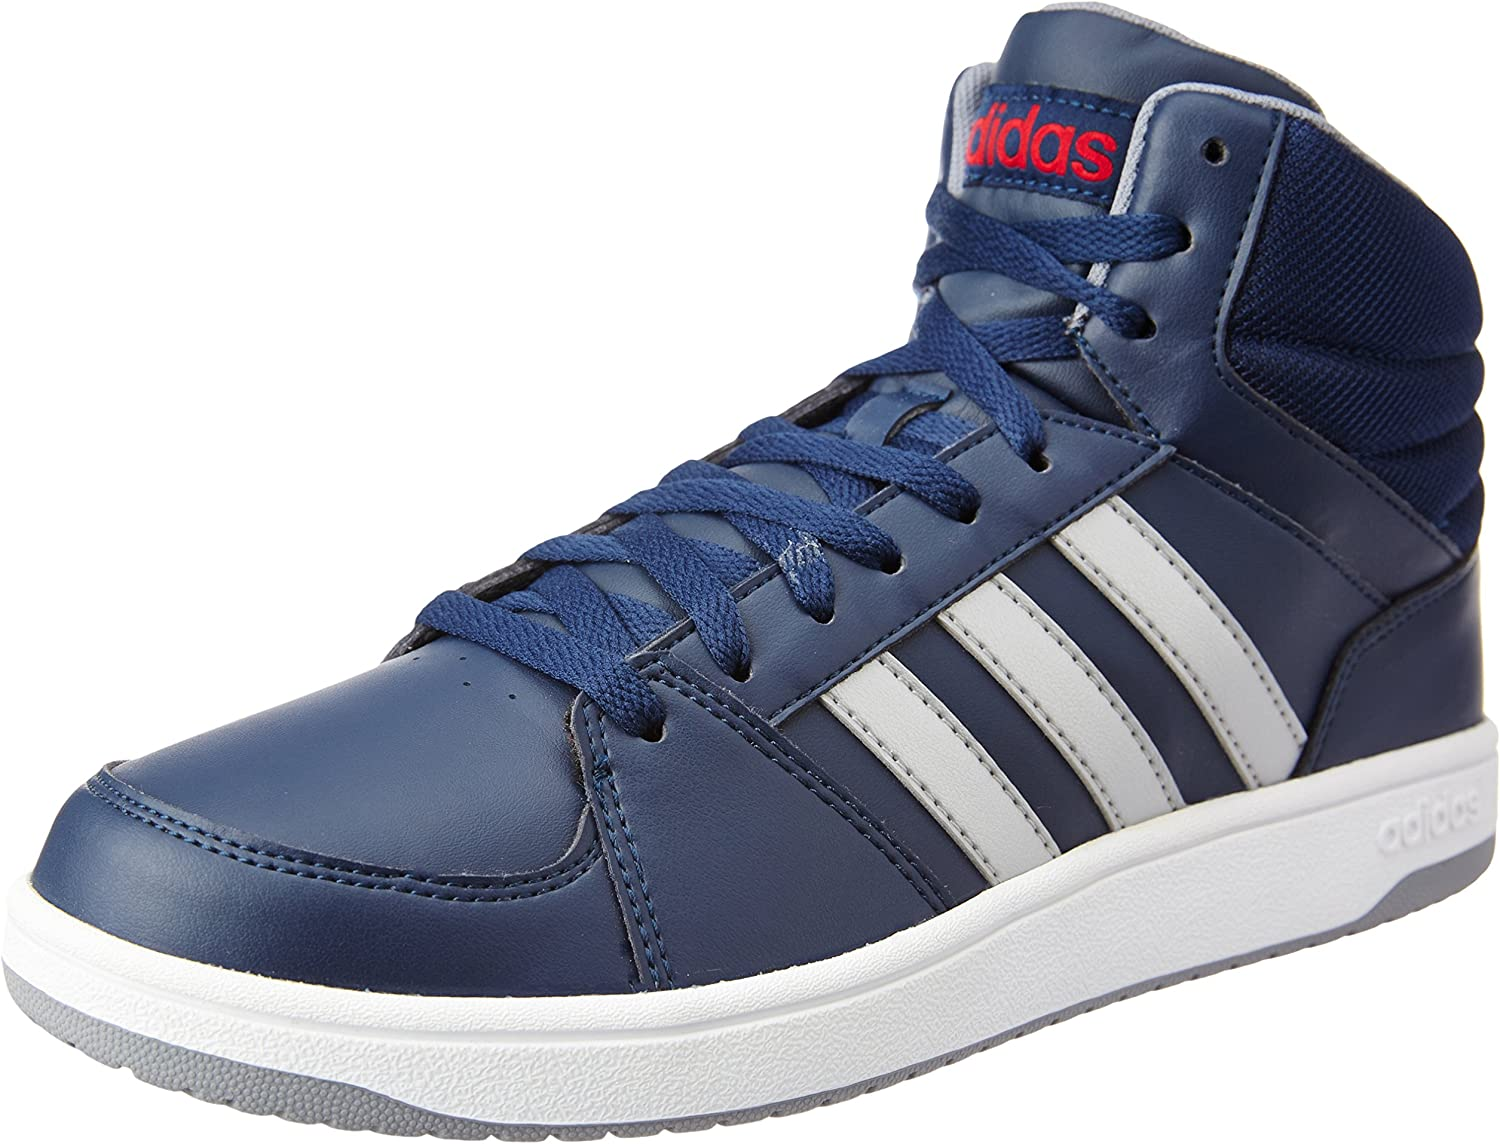 adidas Hoops VS MID - Trainers for Men, 40 2/3, Blue: Amazon.co.uk ...